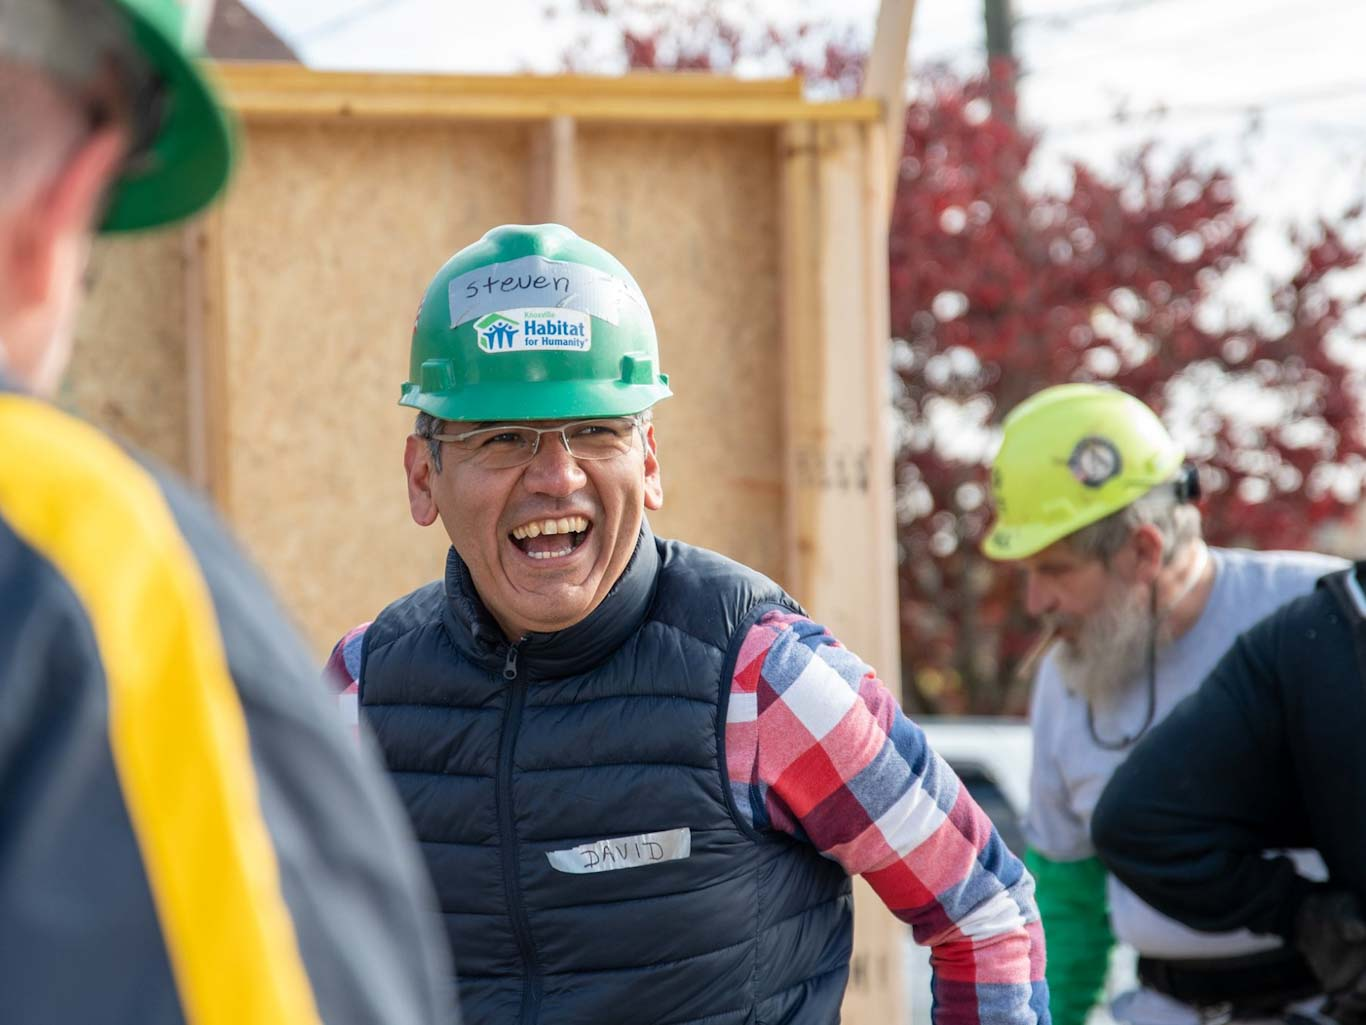 Construction volunteer smiling on the build site